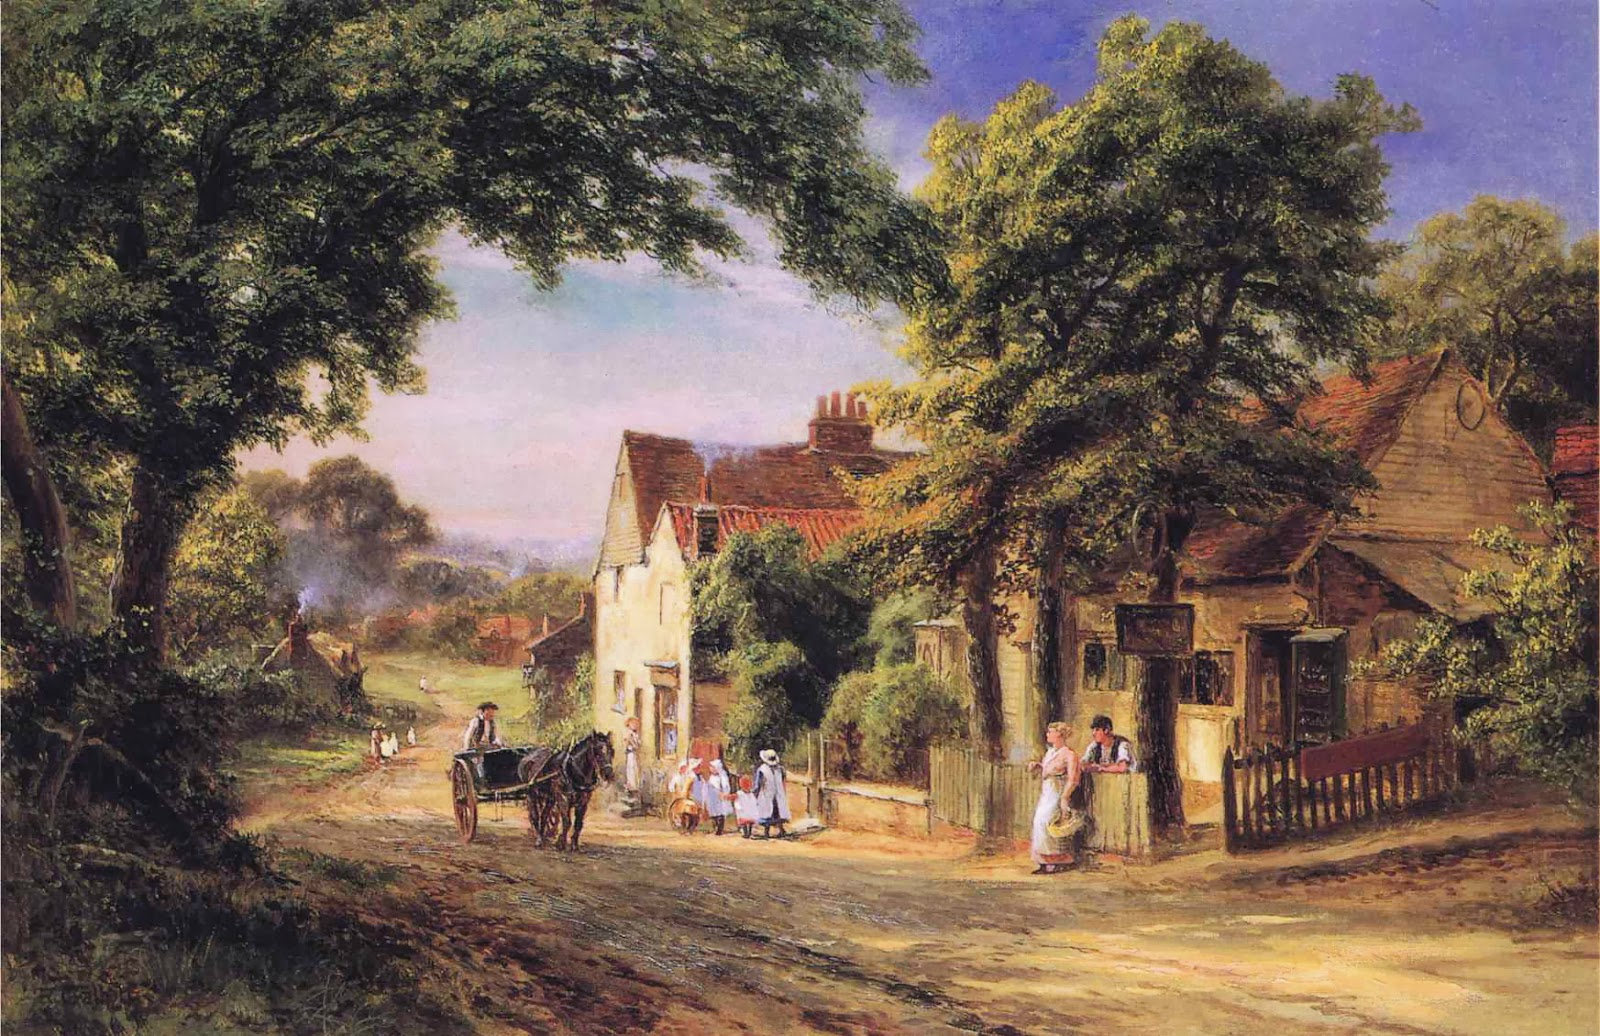 19th century rural new england family essay The social history of england evidences many social aspects that shaped 20th-century rural influential essays on 19th century working.